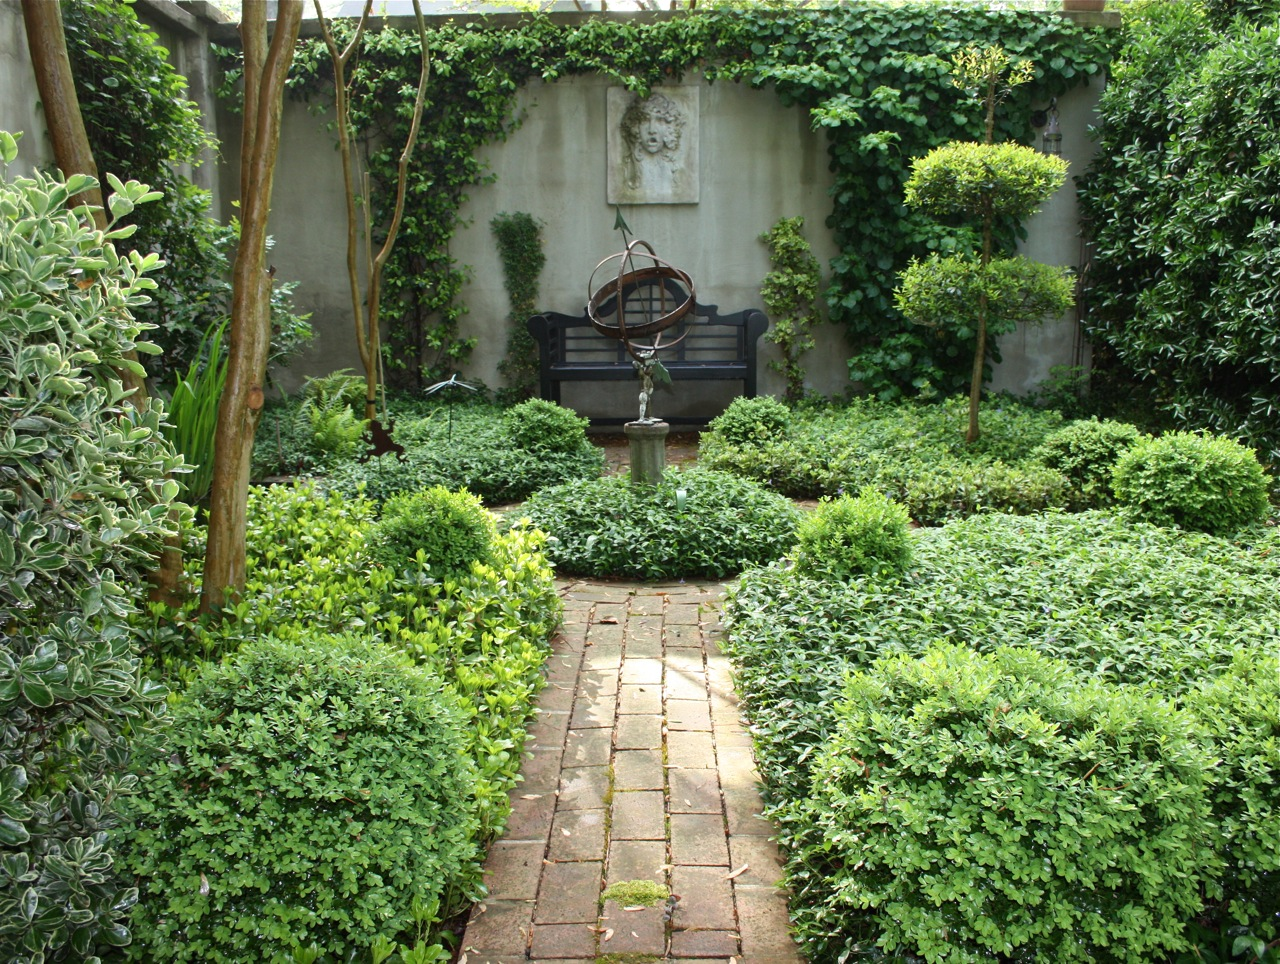 A curious gardener southern courtyard gardens for Courtyard garden ideas photos